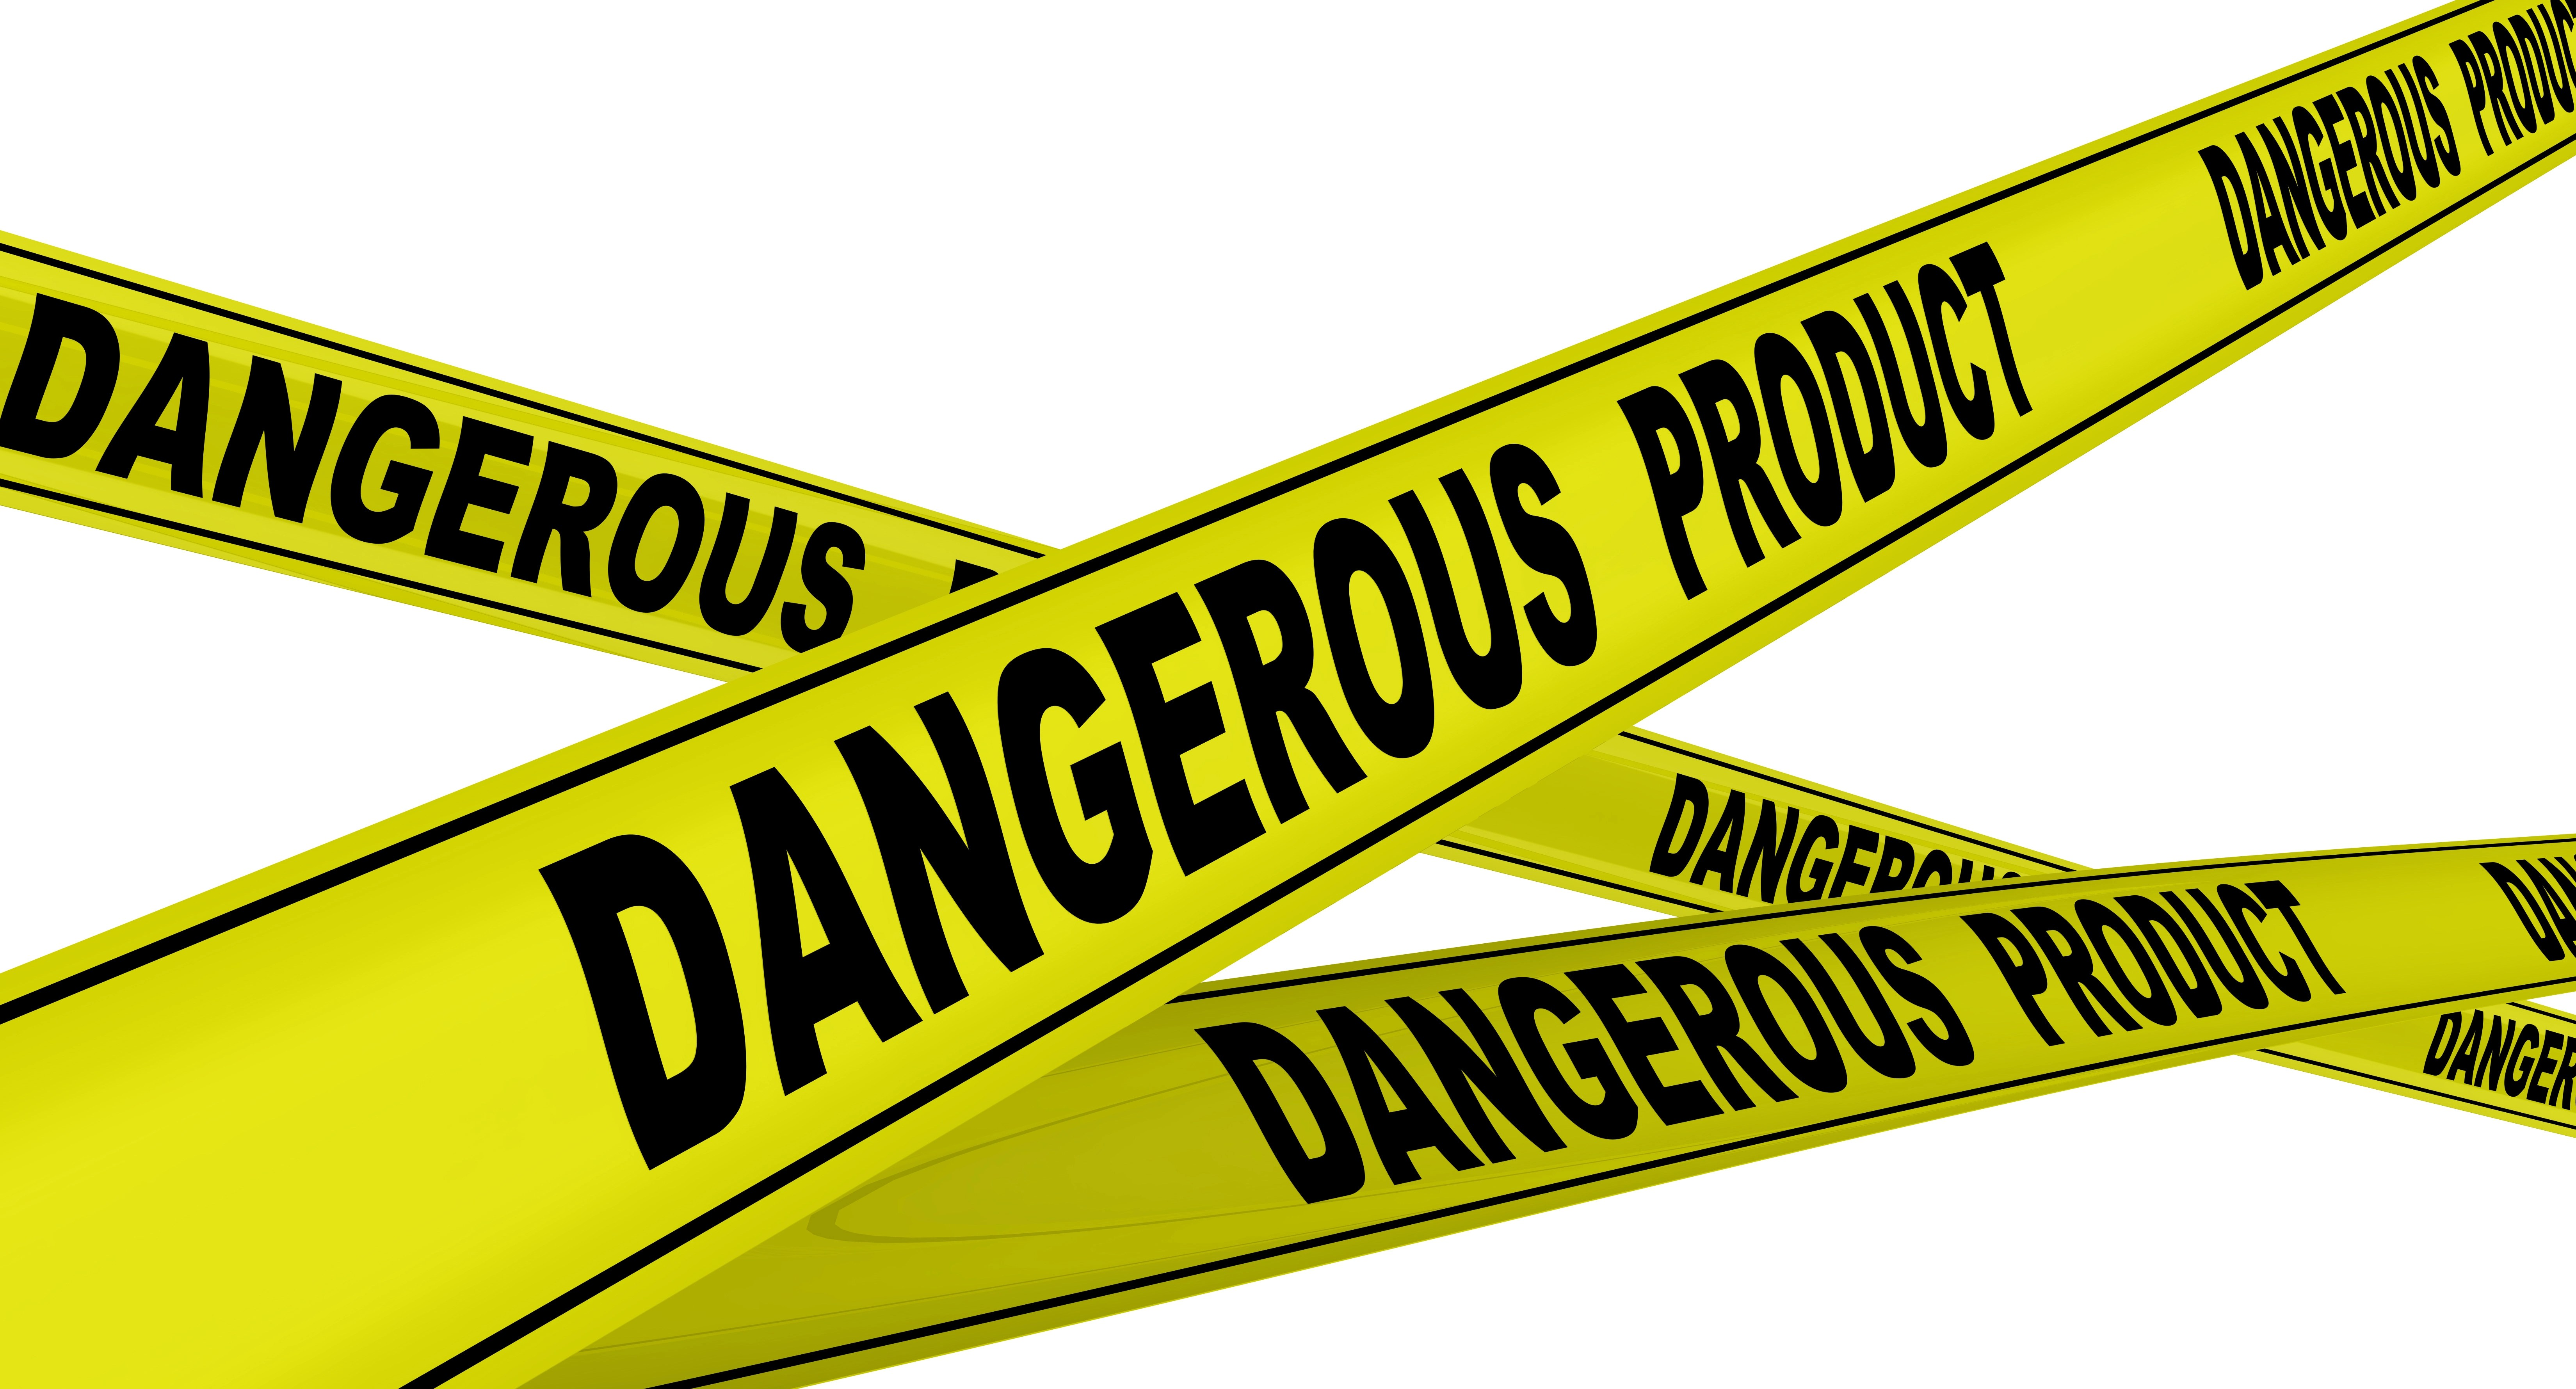 7 Types of Recoverable Damages in Product Liability